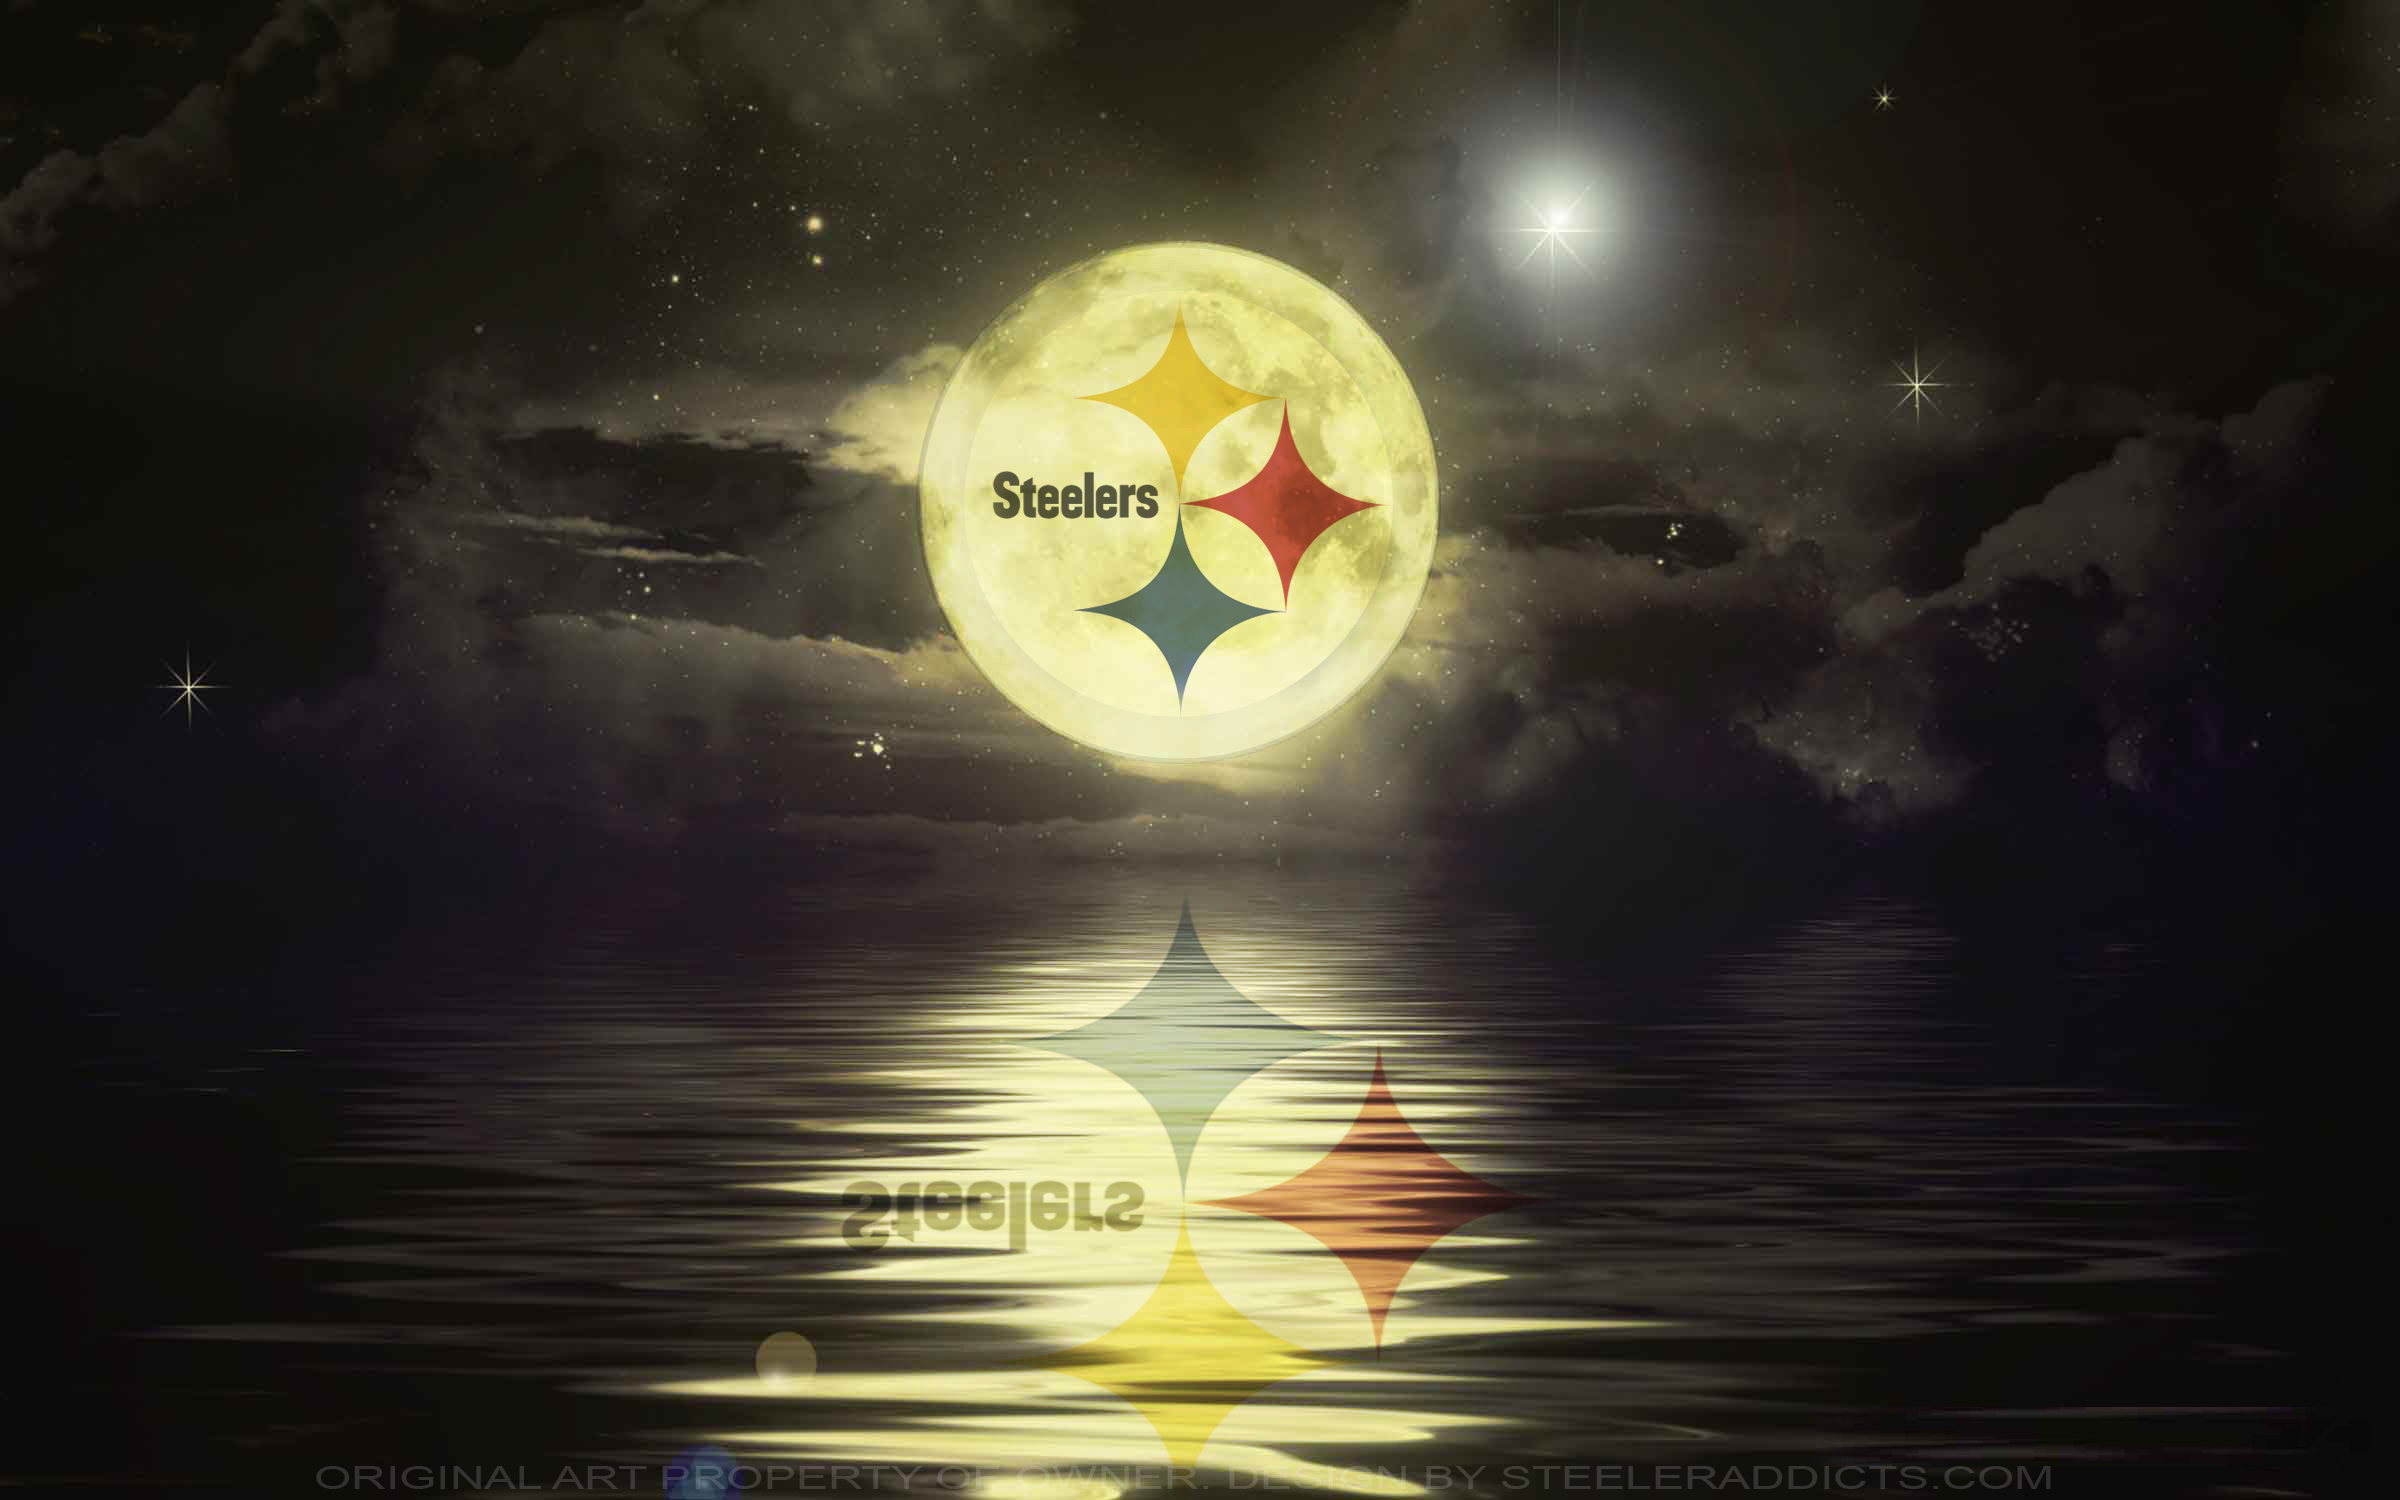 1000+ images about STEELERS on Pinterest | Wallpaper downloads